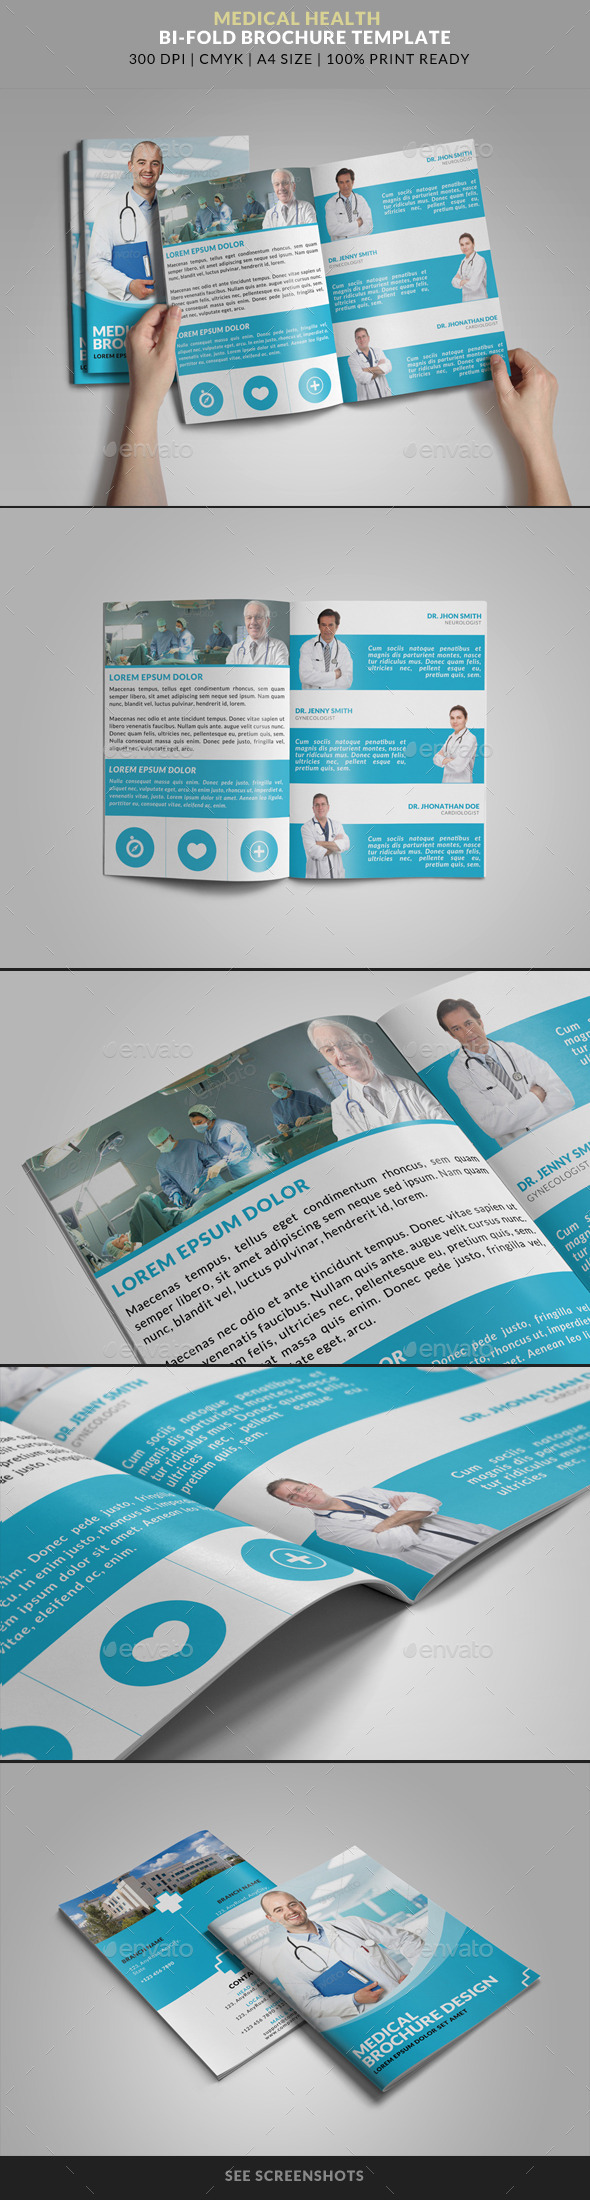 Medical Health Doctor Hospital Bifold Brochure - Corporate Brochures